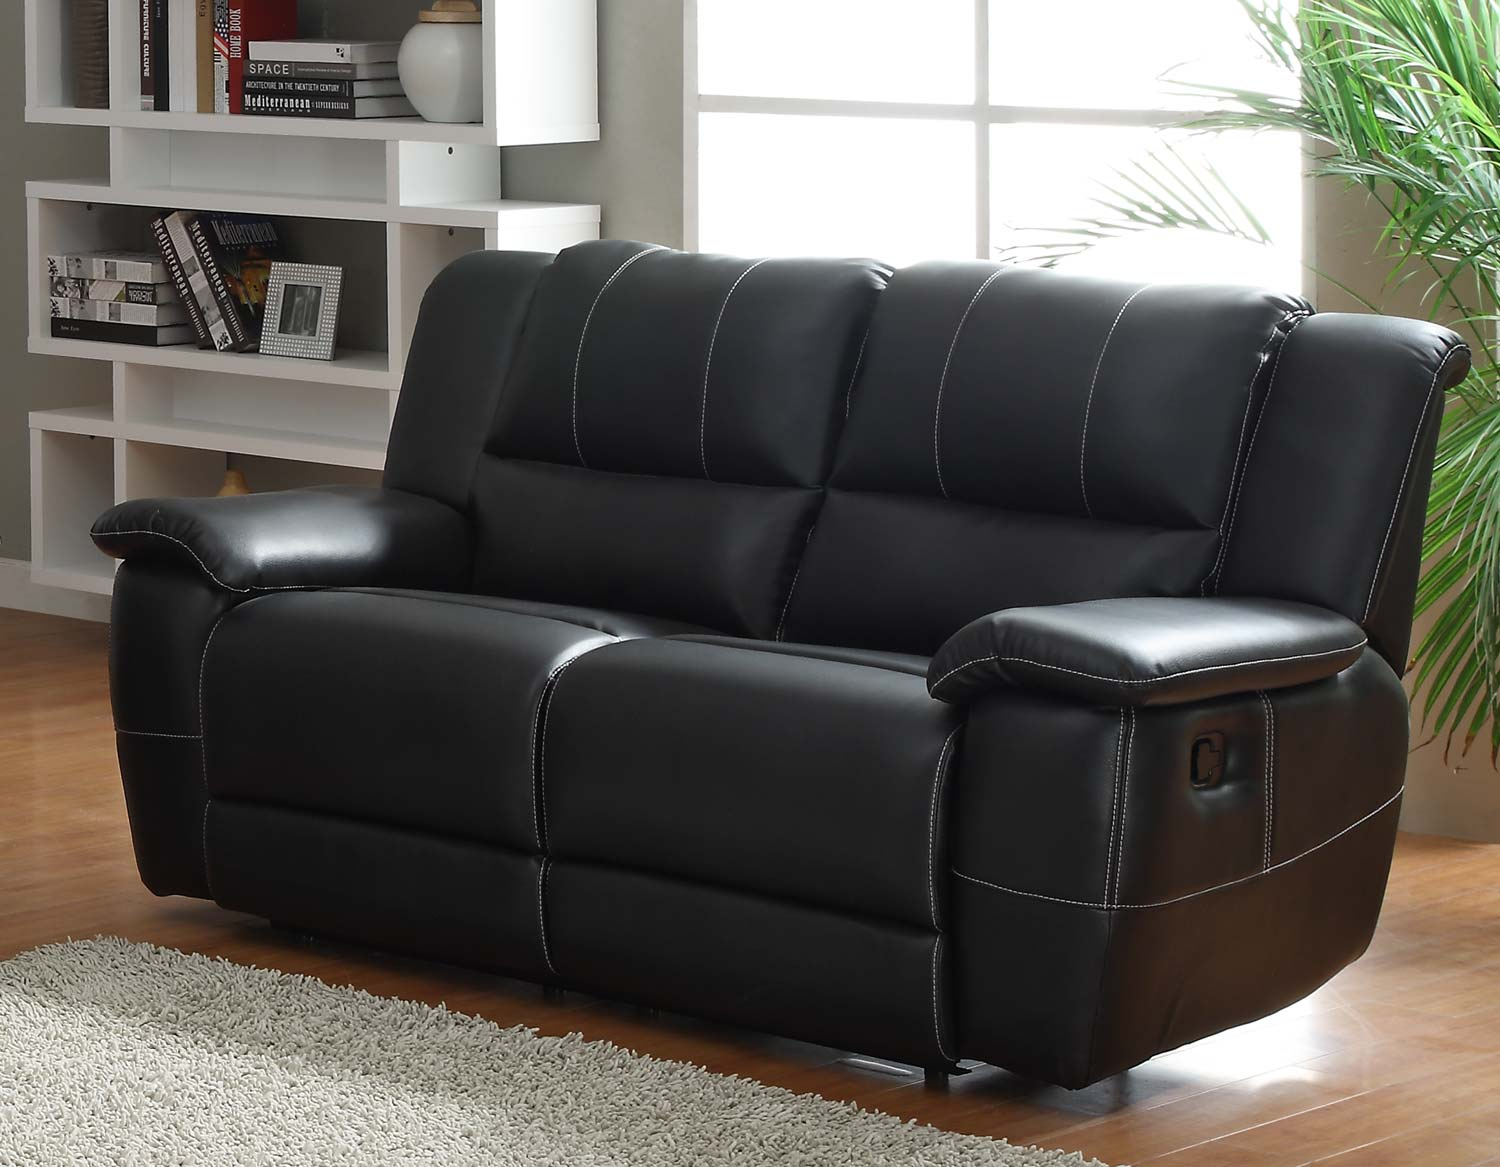 Homelegance Cantrell Reclining Sofa Set Black Bonded Leather Match U9778blk 3